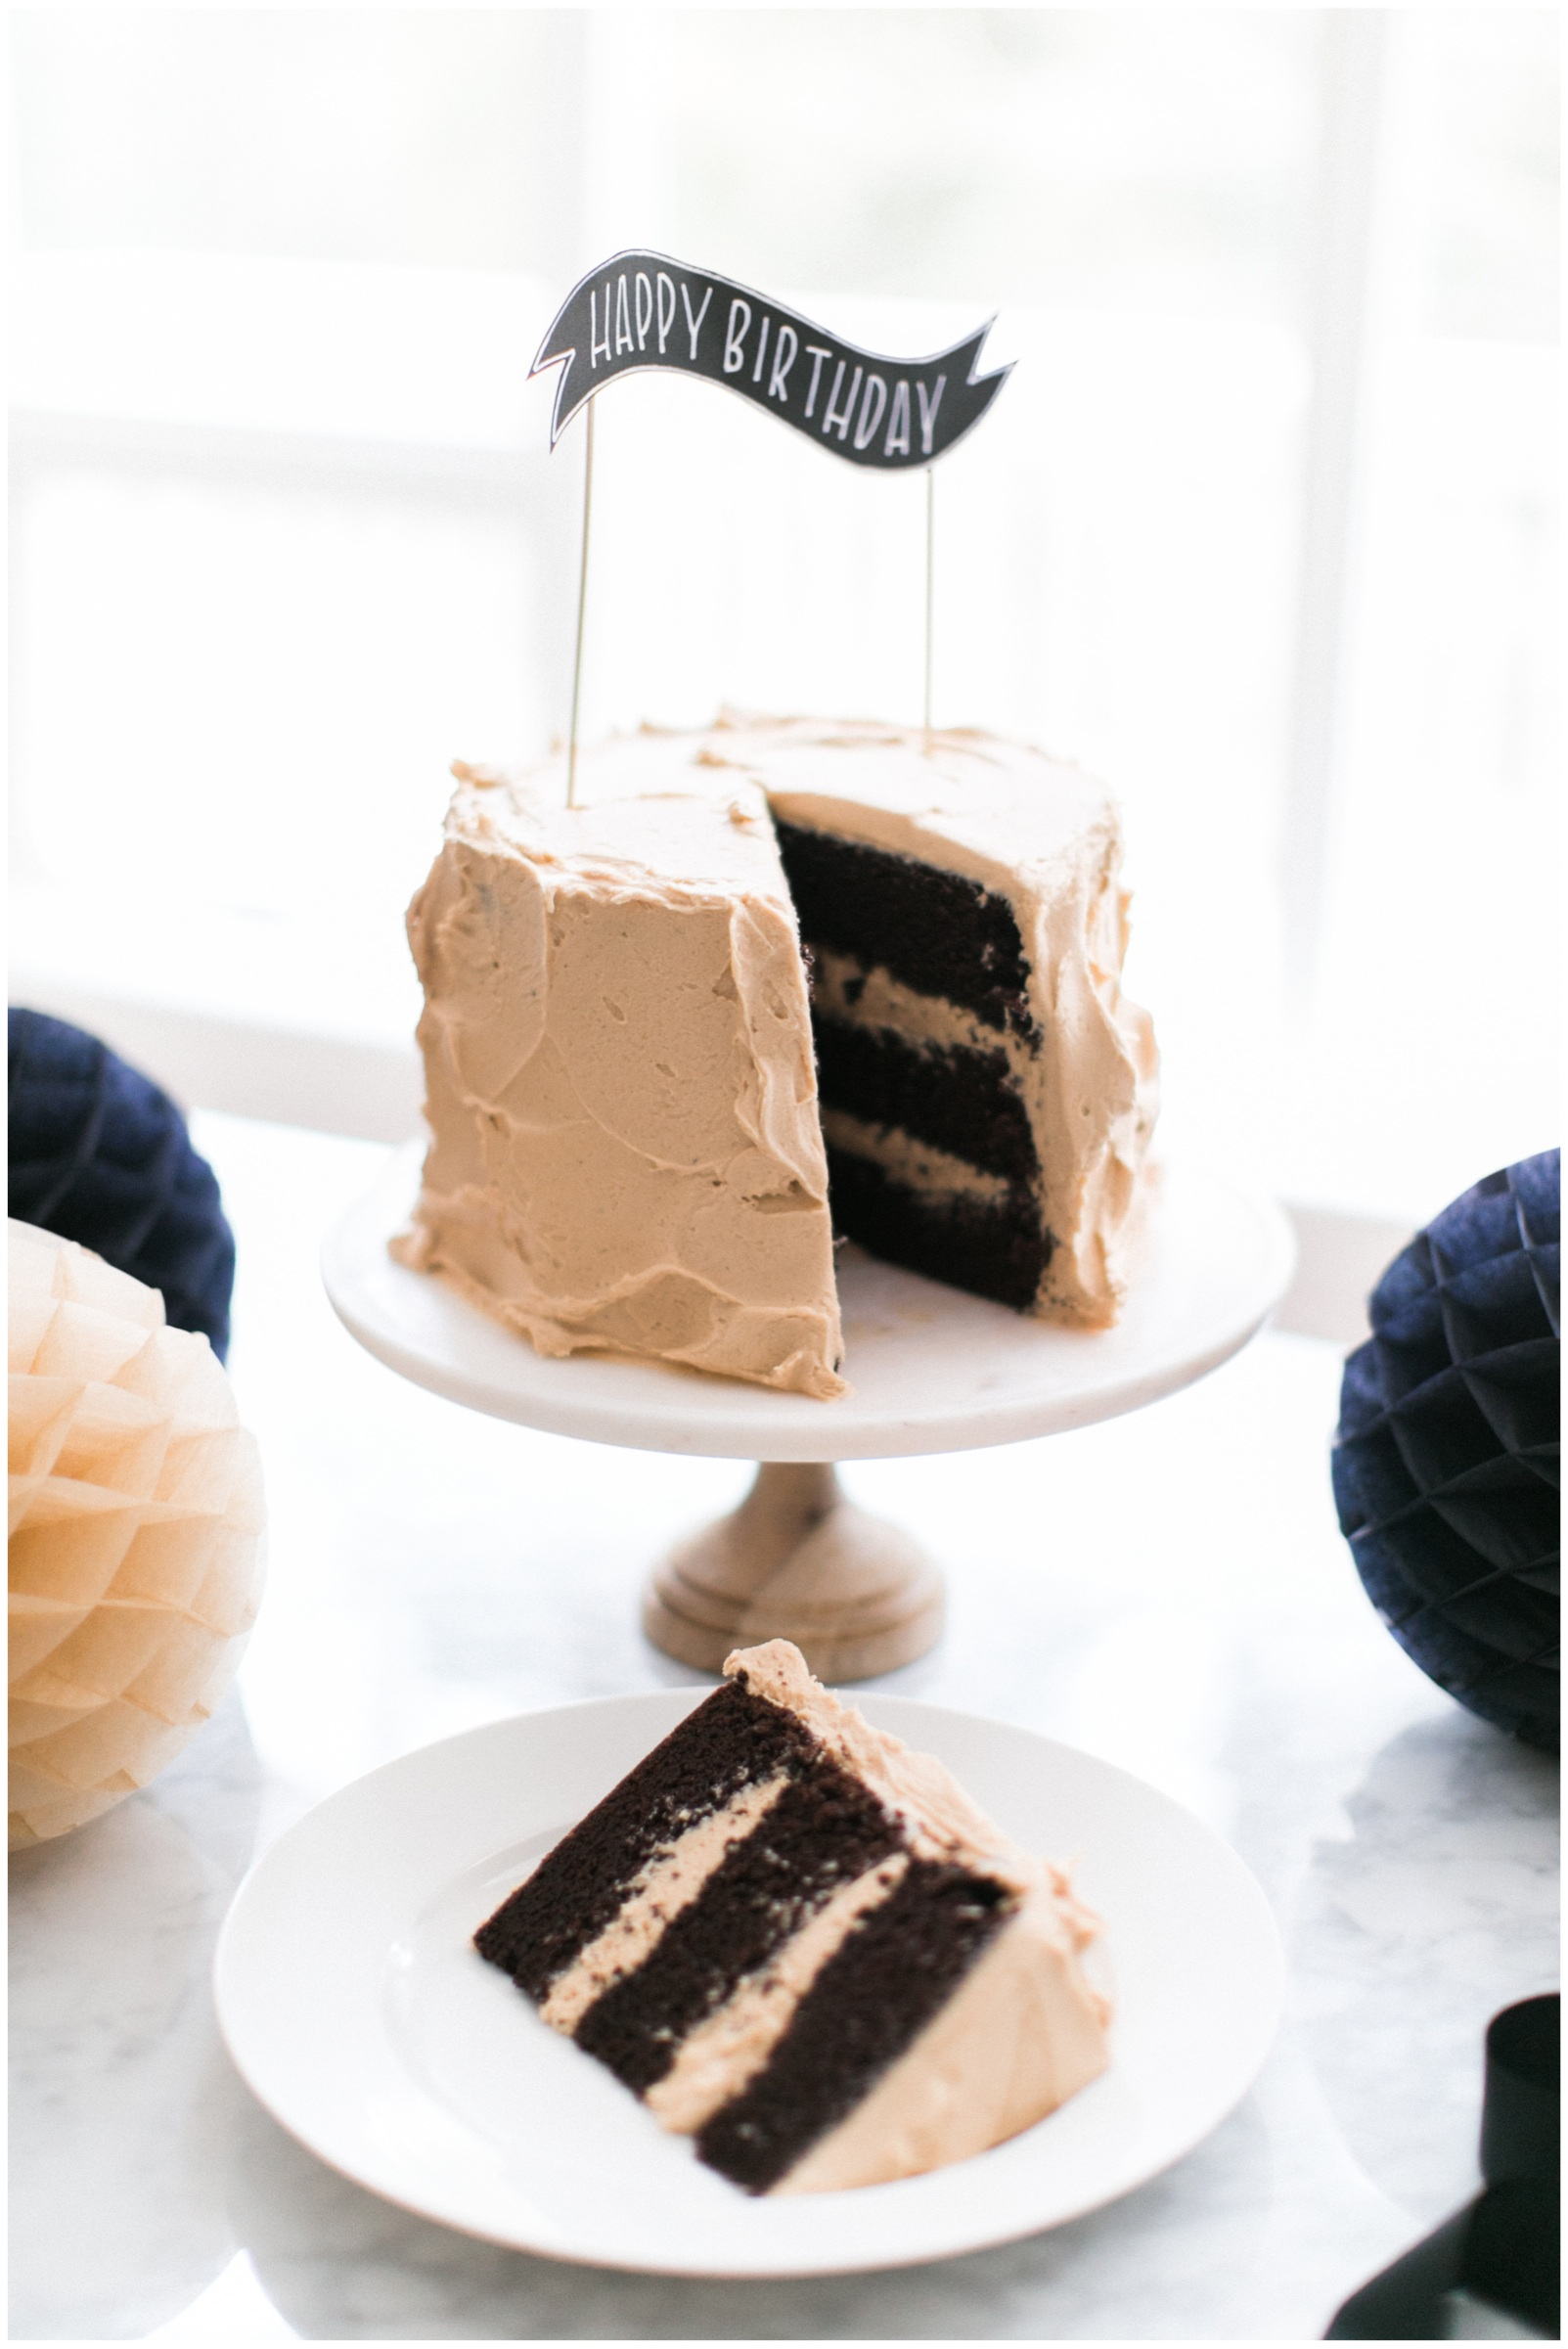 sinclair-and-moore-chocolate-peanutbutter-cake-27